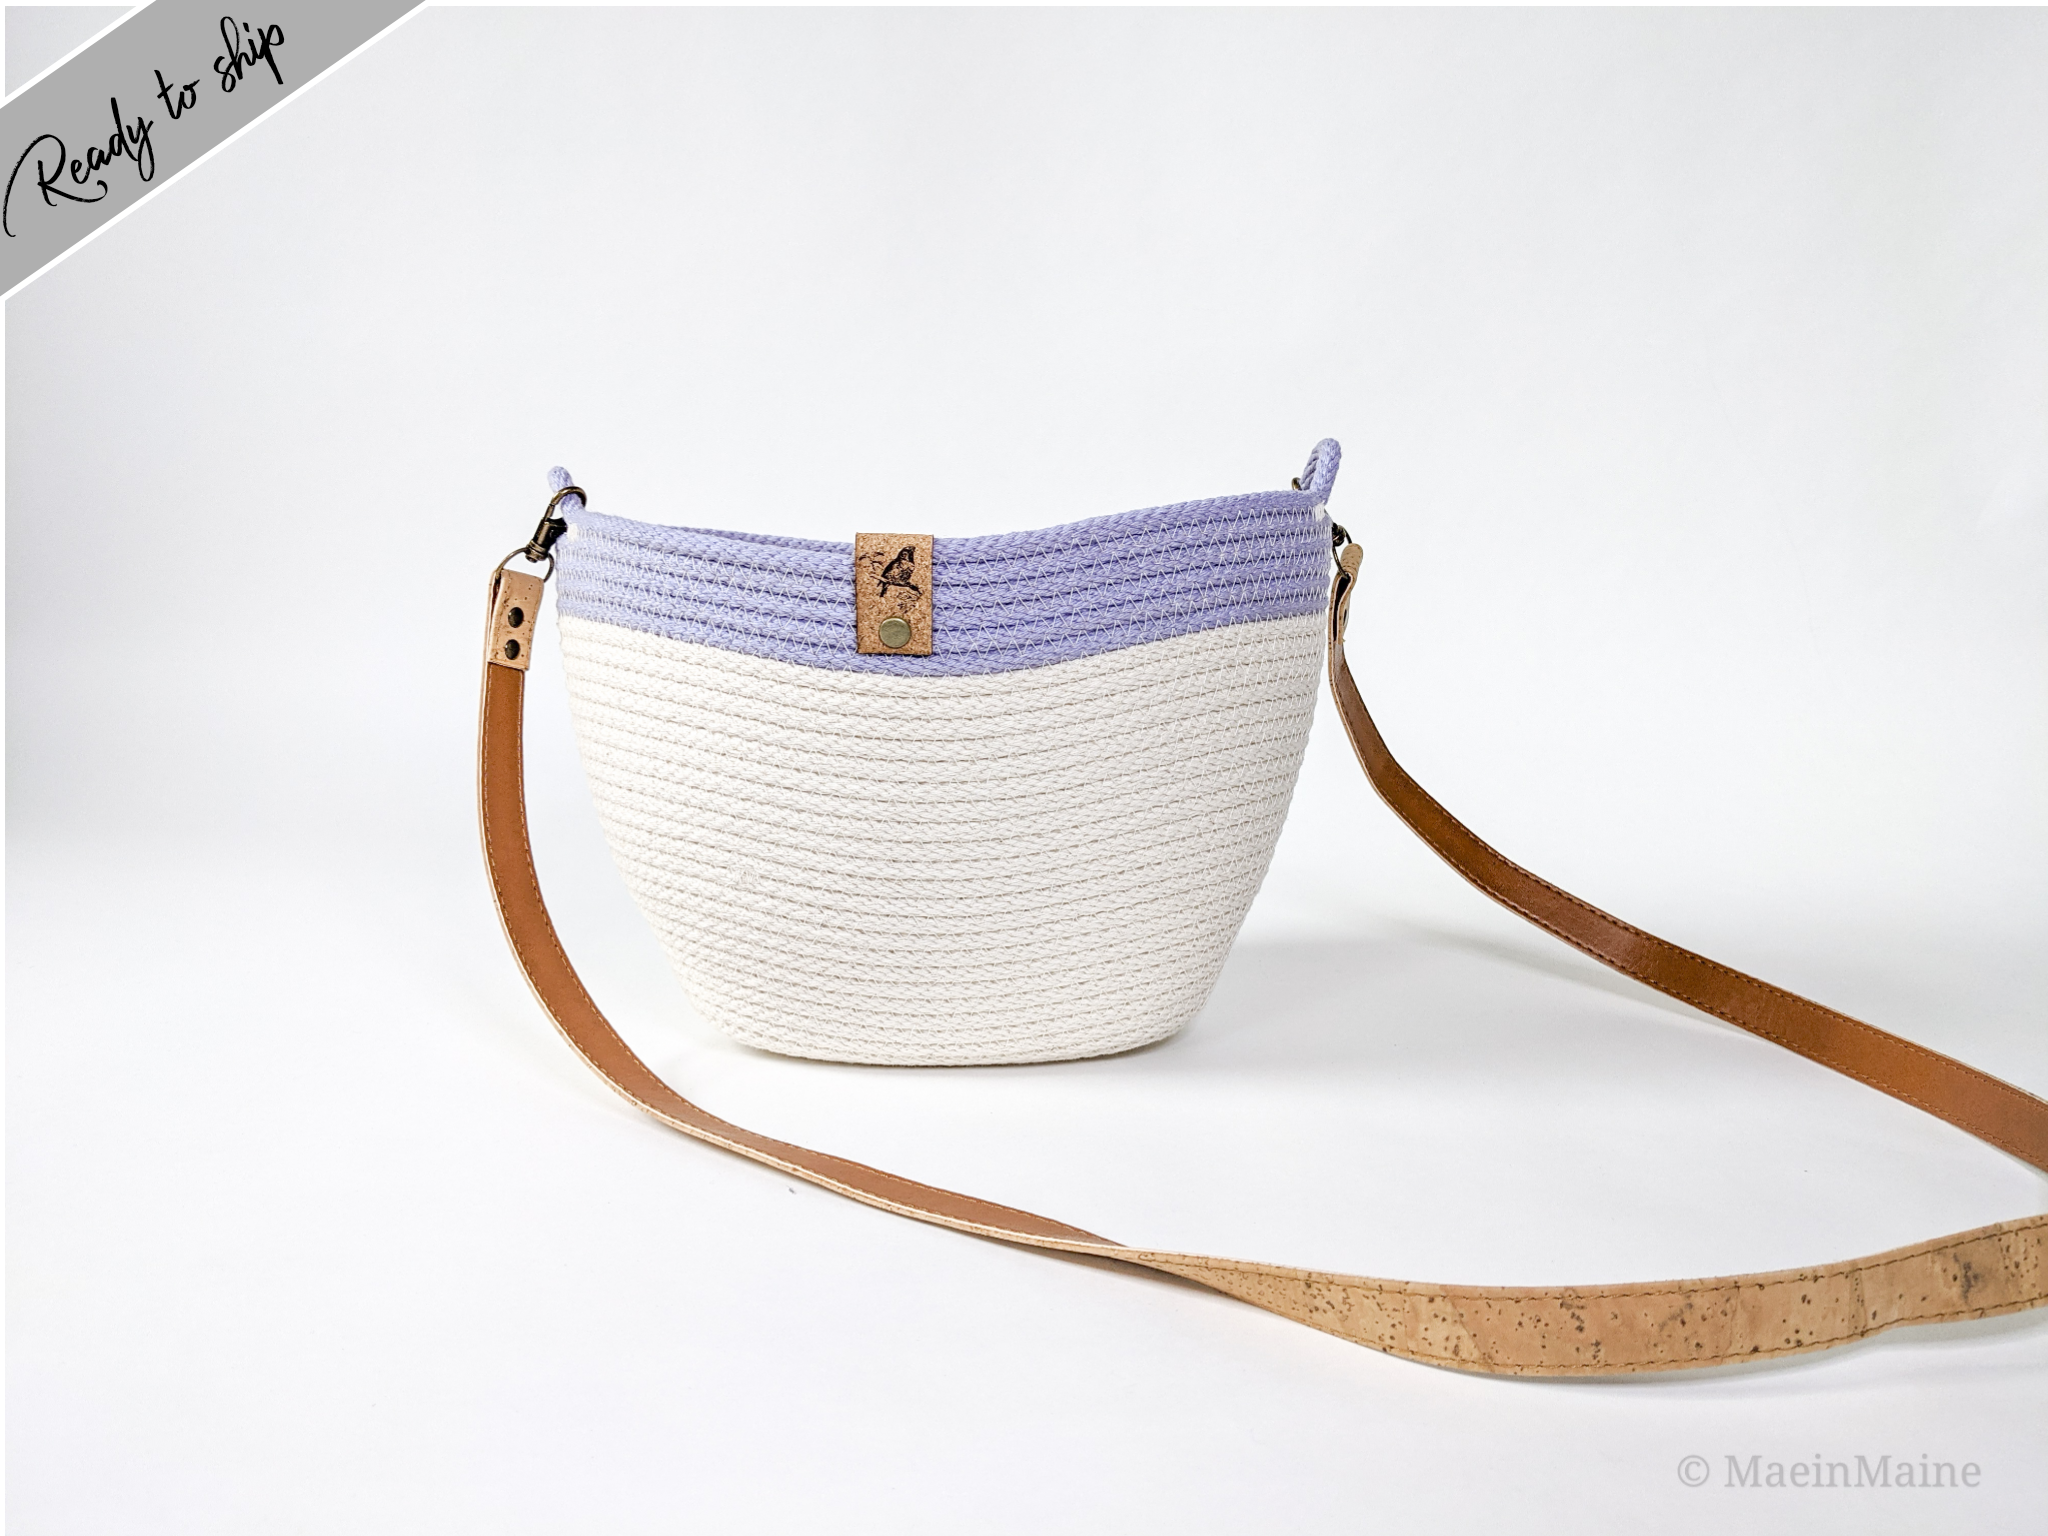 Harbor - Tote in Dyed 'Wisteria'